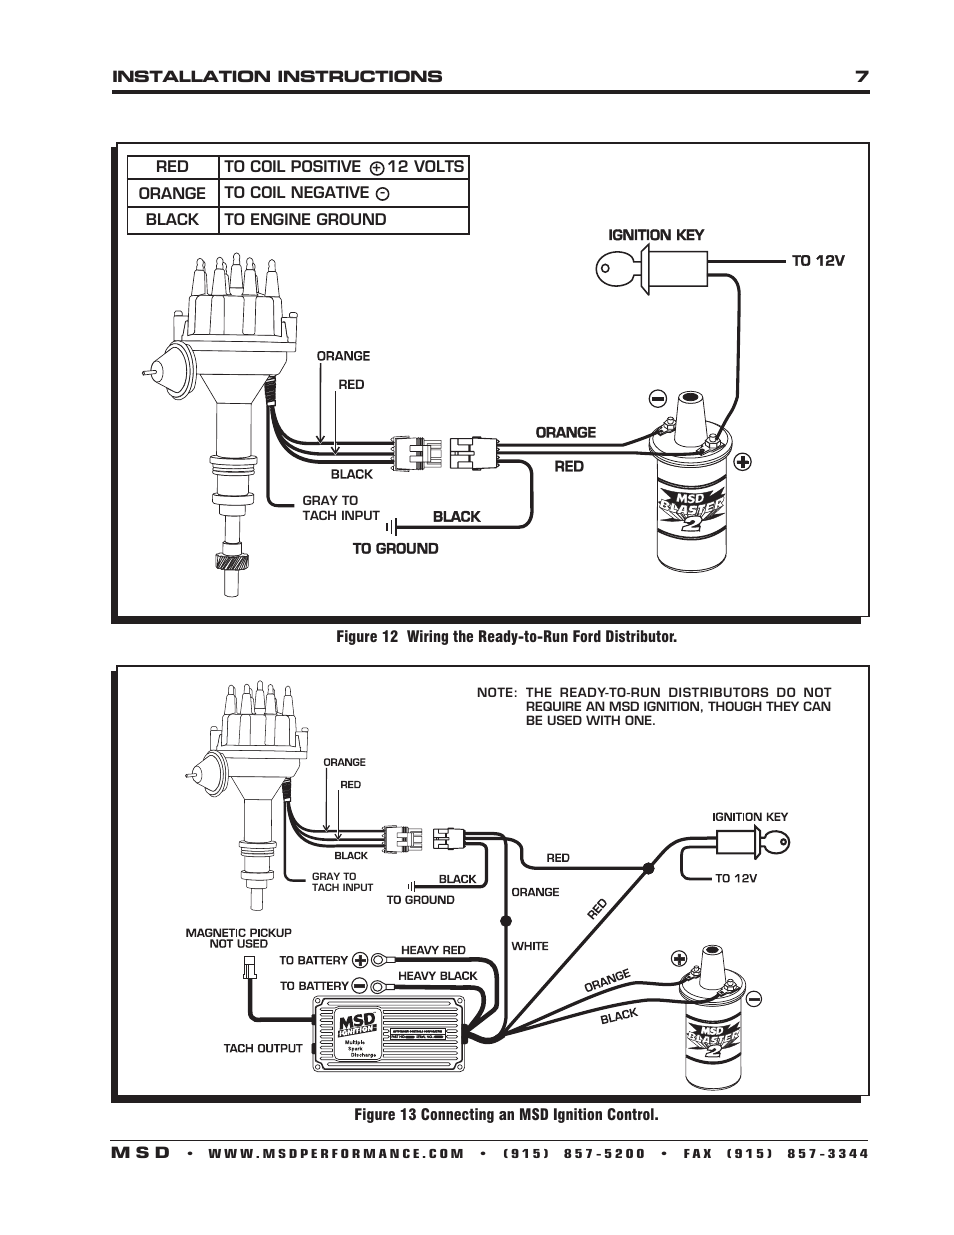 medium resolution of ford 460 msd distributor wiring wiring diagram article review ford 460 msd ignition wiring diagram wiring